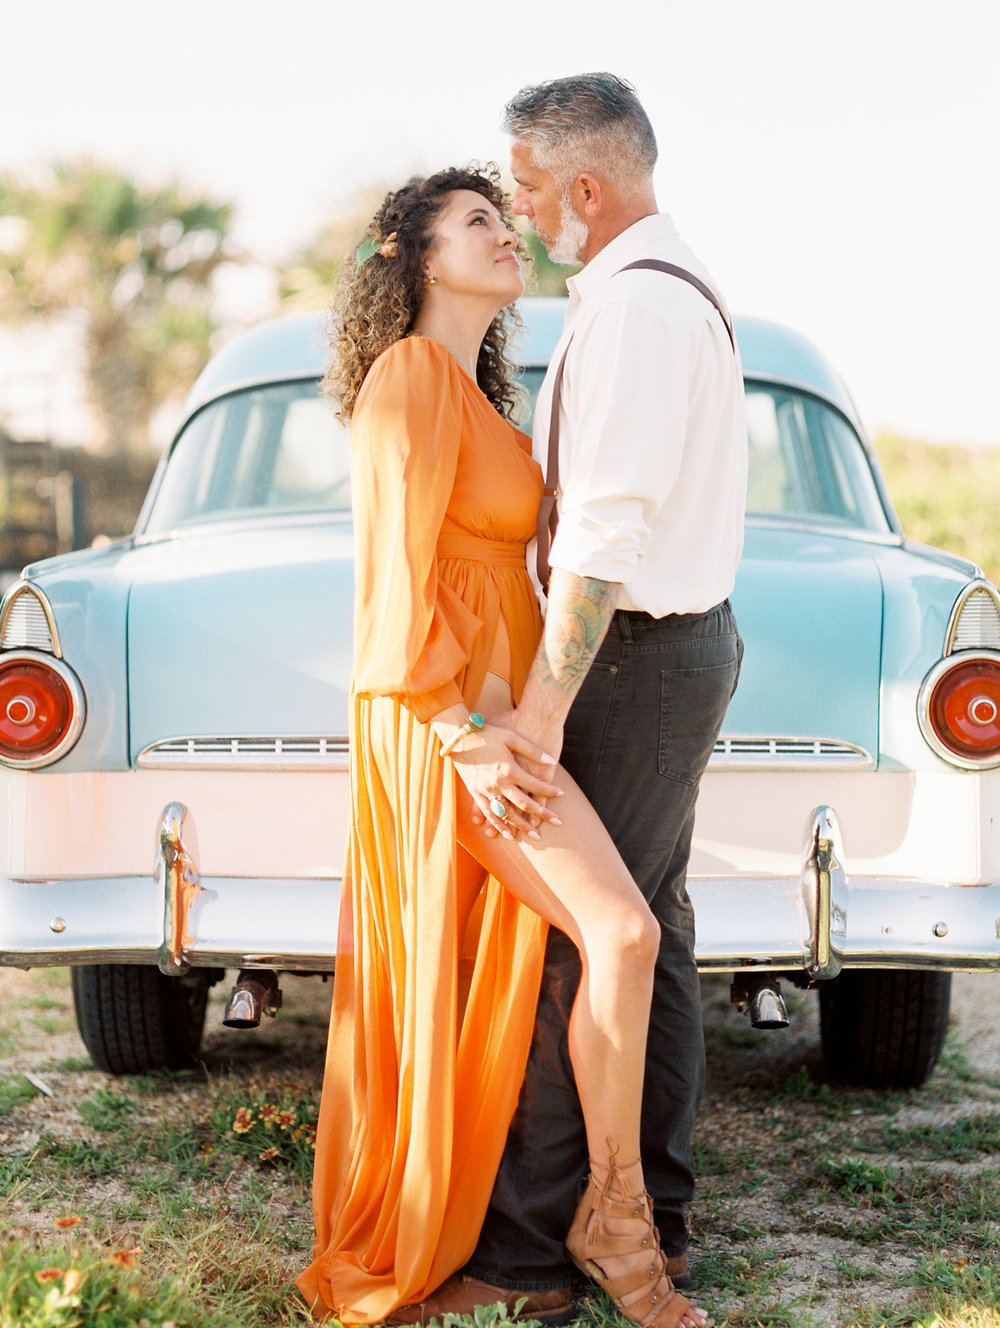 St. Augustine Beach A1A Anniversary Photos of stylish couple in vintage blue car